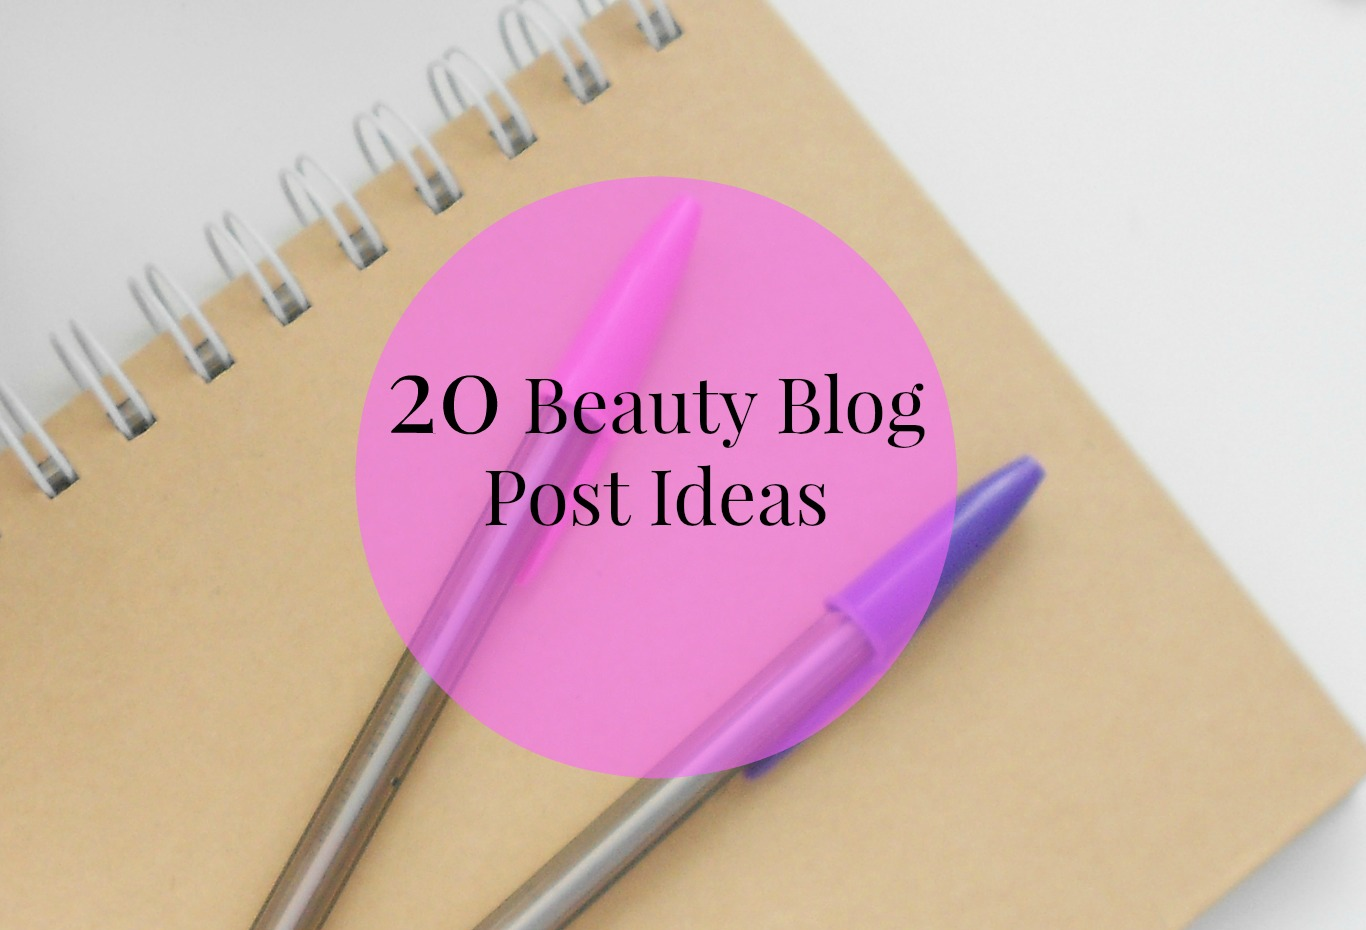 20 Beauty Blog Post Ideas